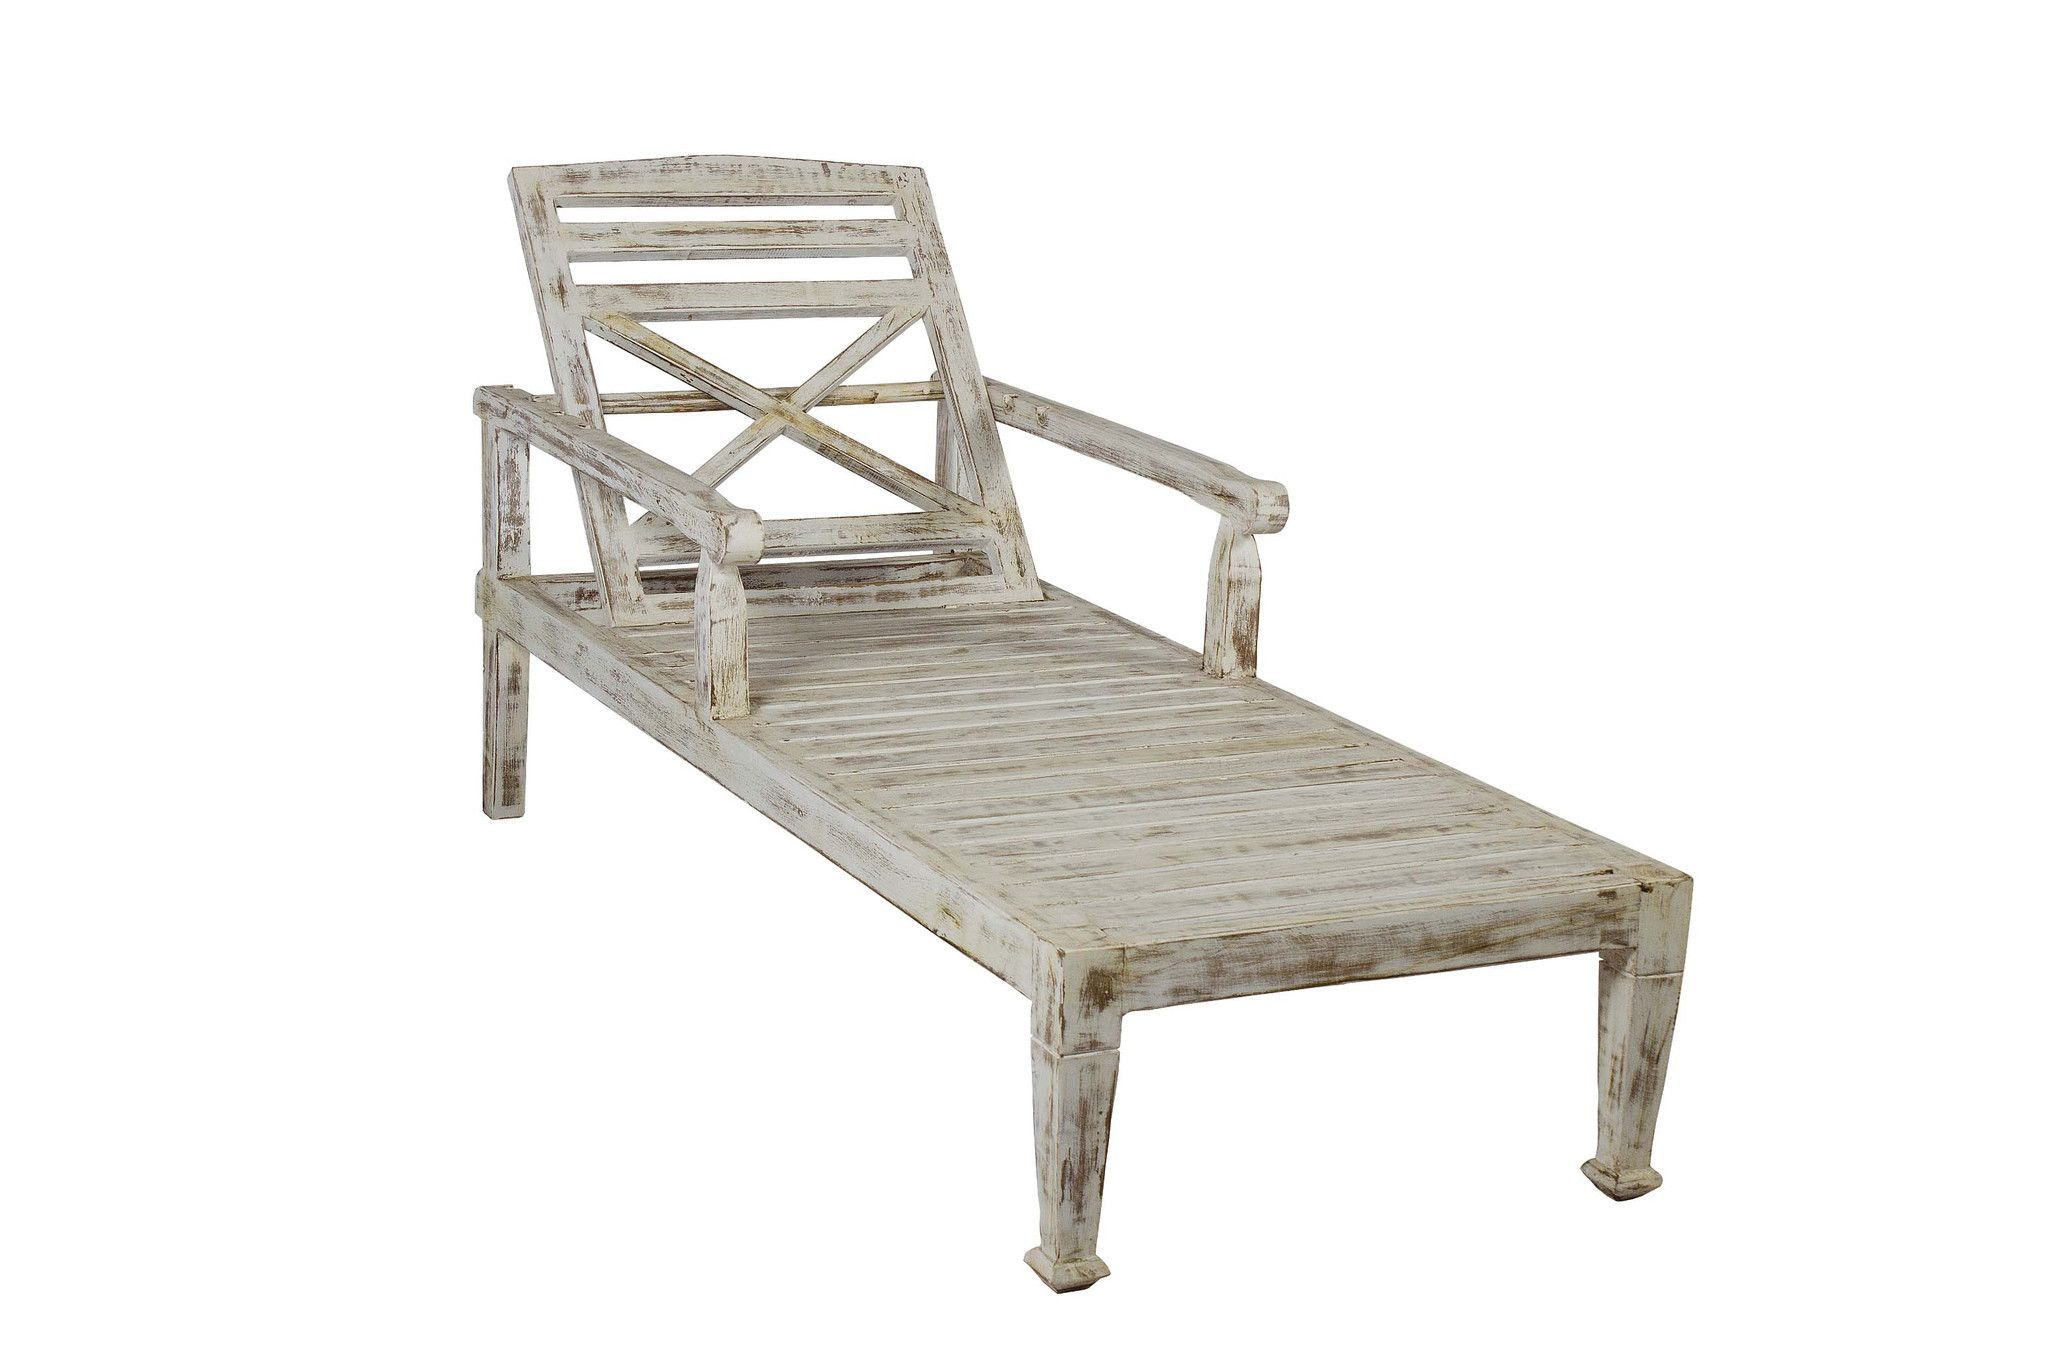 Solid Teak Wood Beach Chaise Lounge Chair Faded White